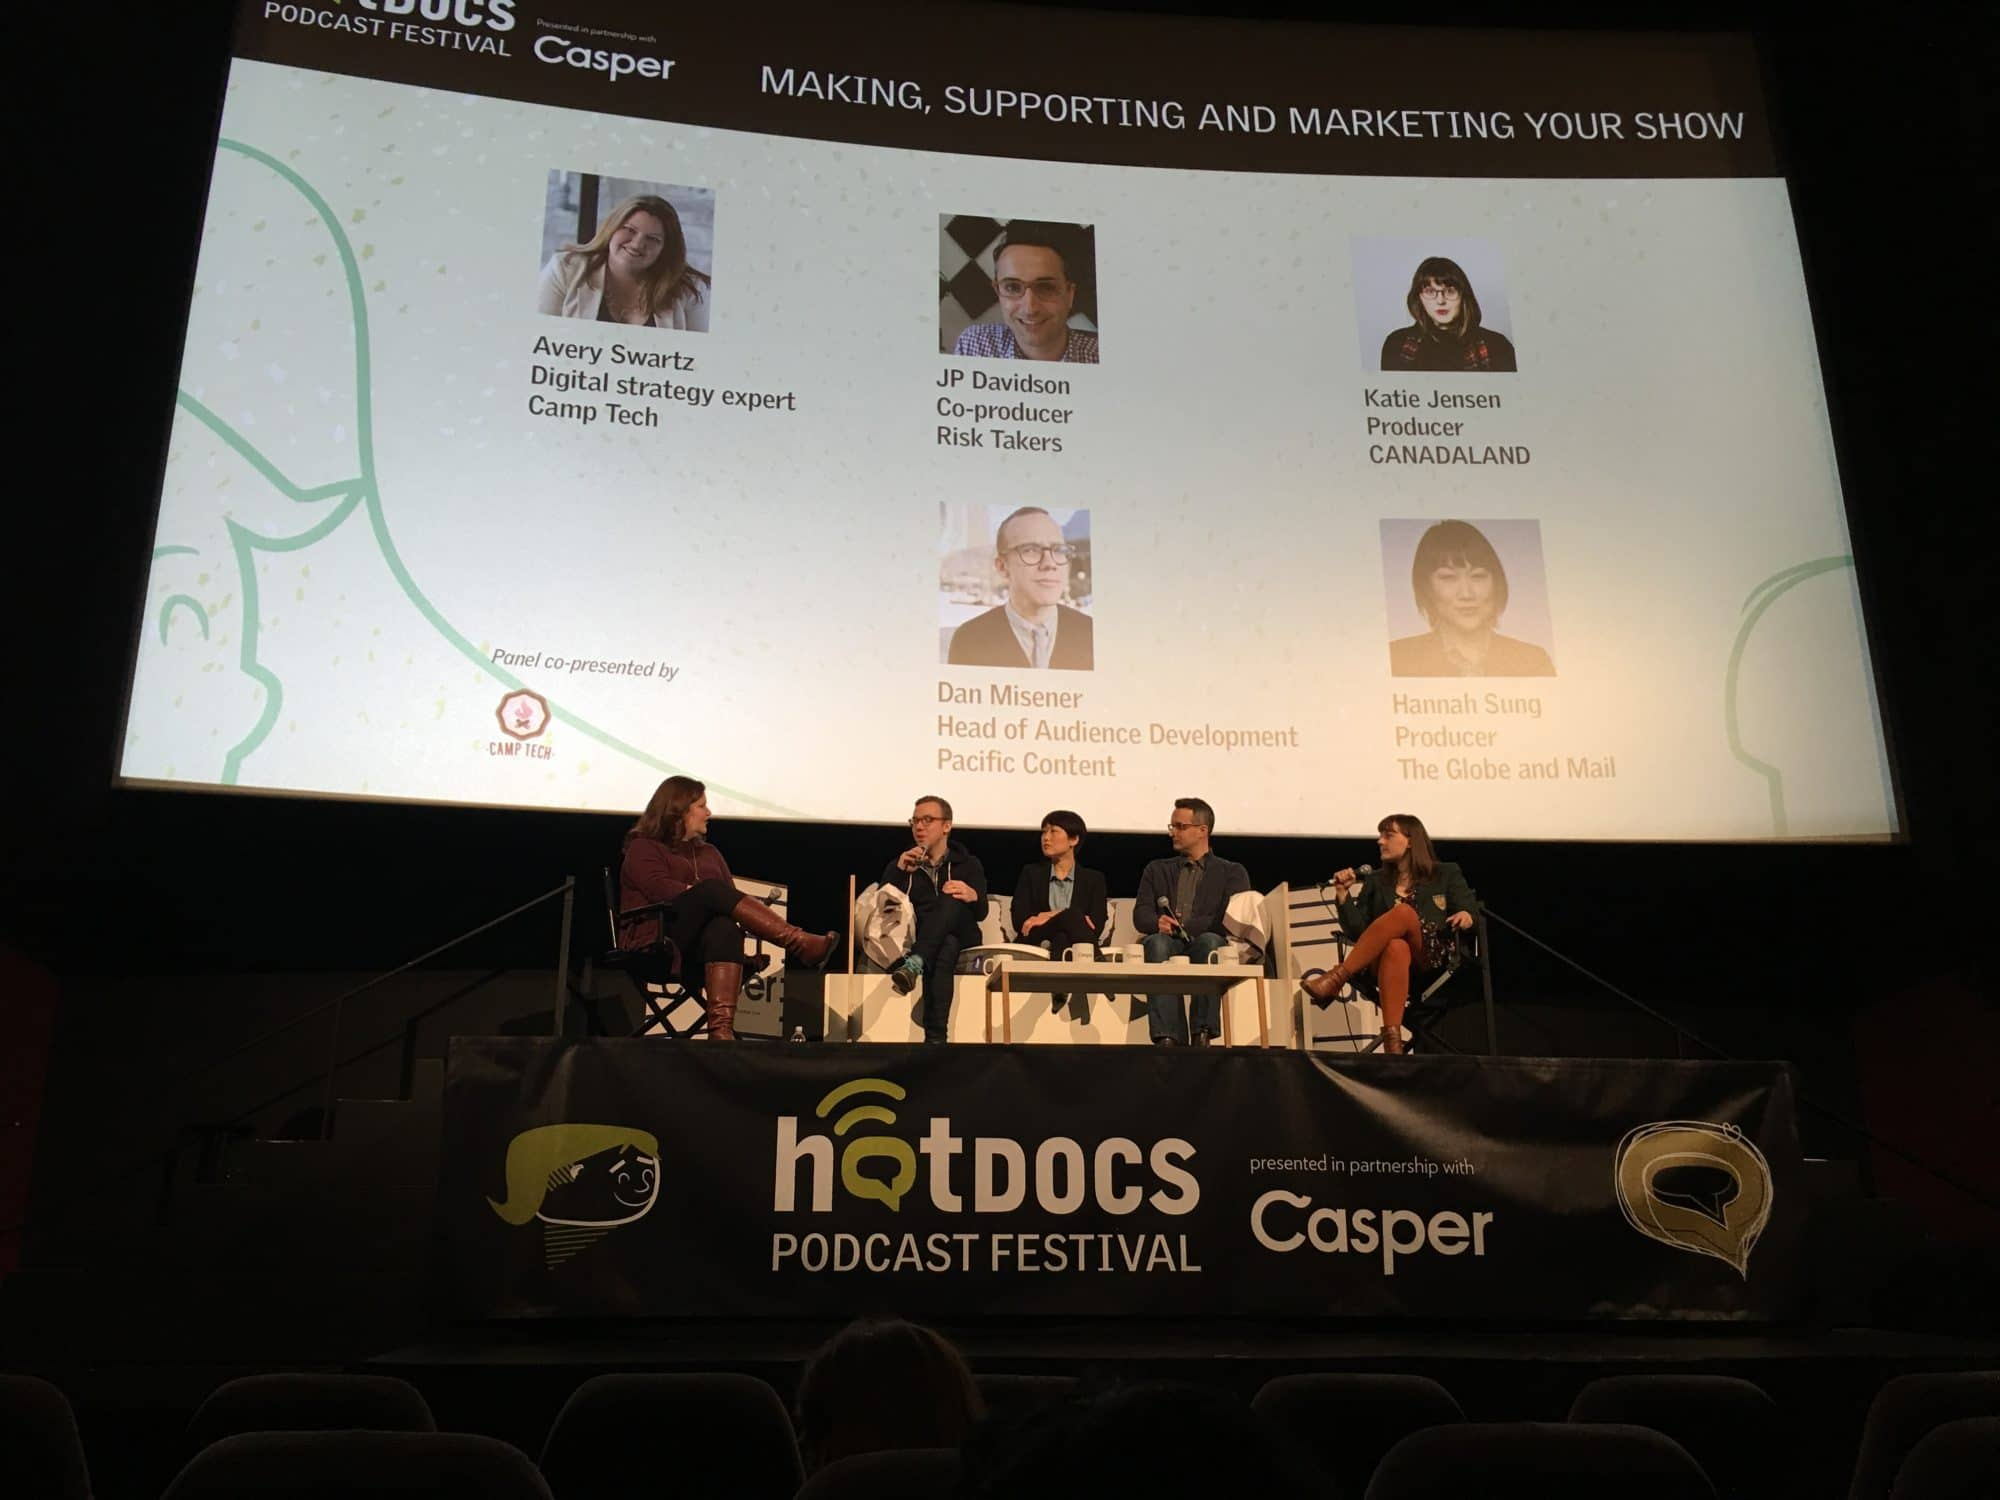 making-supporting-and-marketing-panel